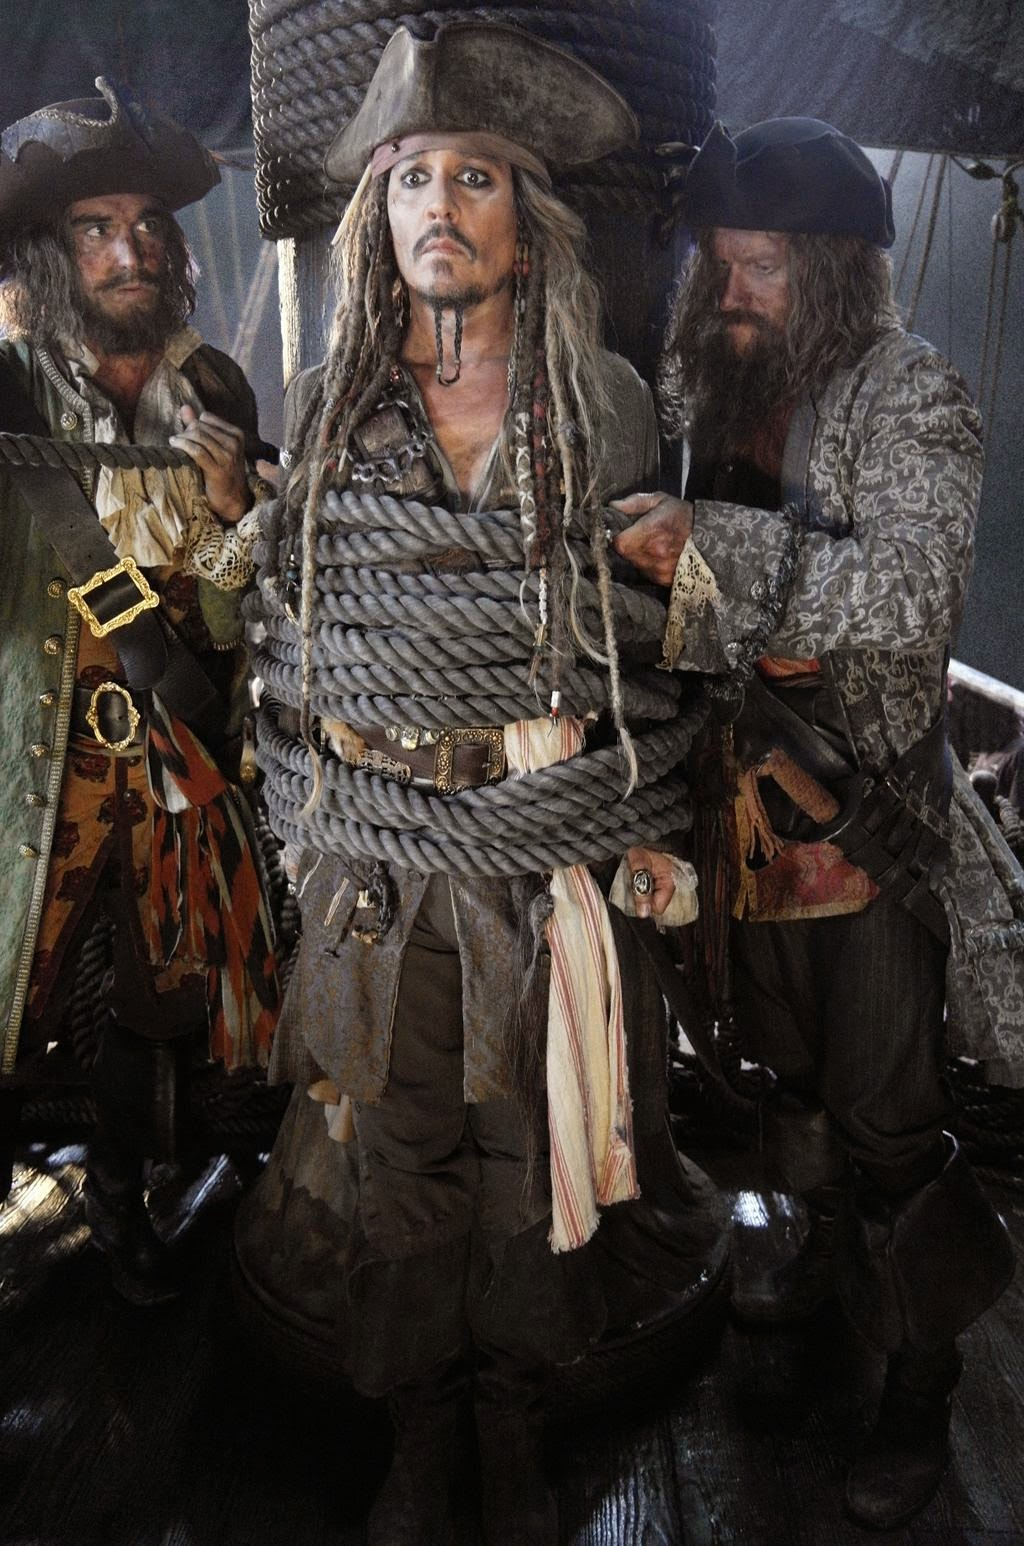 Johnny-Depp-Pirates-5-Movie-Poster